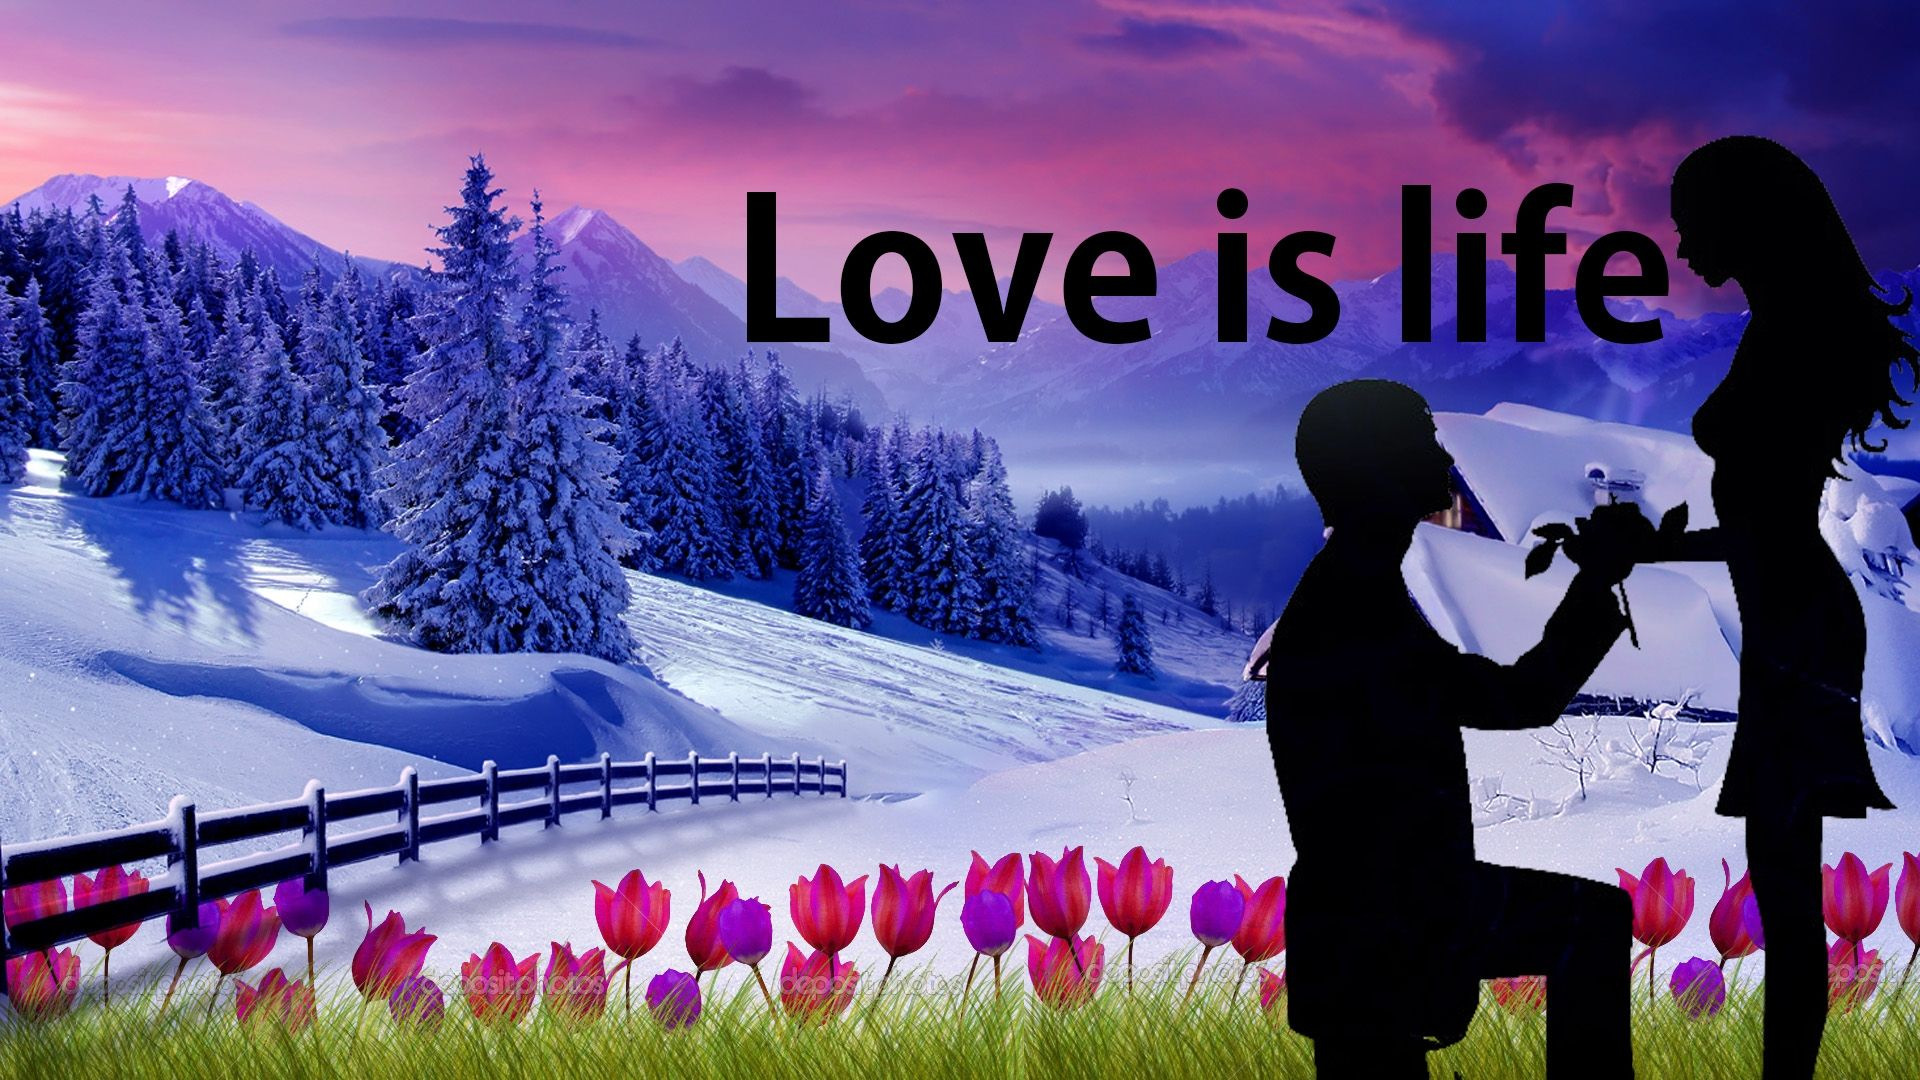 Wallpaper download on life - Download Wallpaper Of Love Is Life Hd Download Wallpaper Of Love Is Life Hd Download